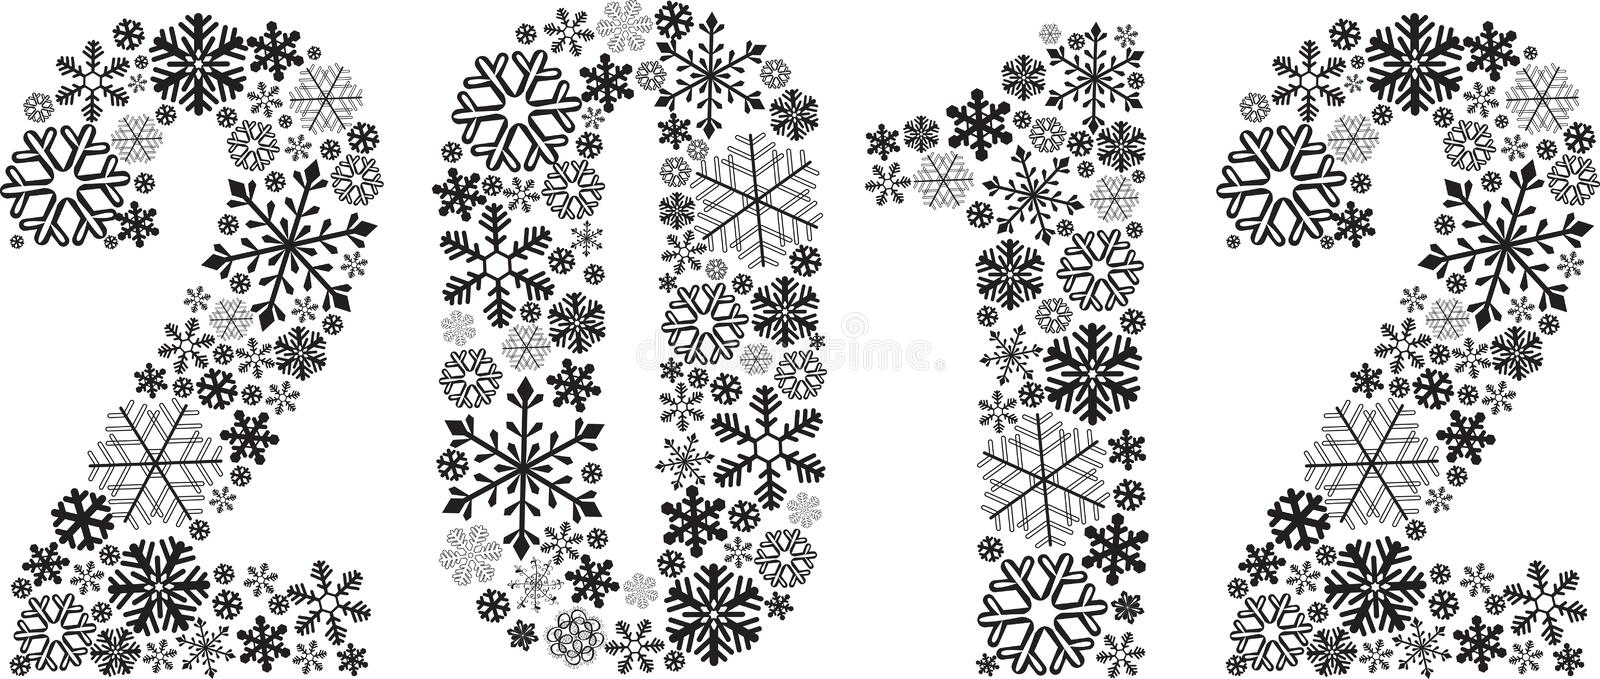 New Year Holiday Background 2012 Stock Photography